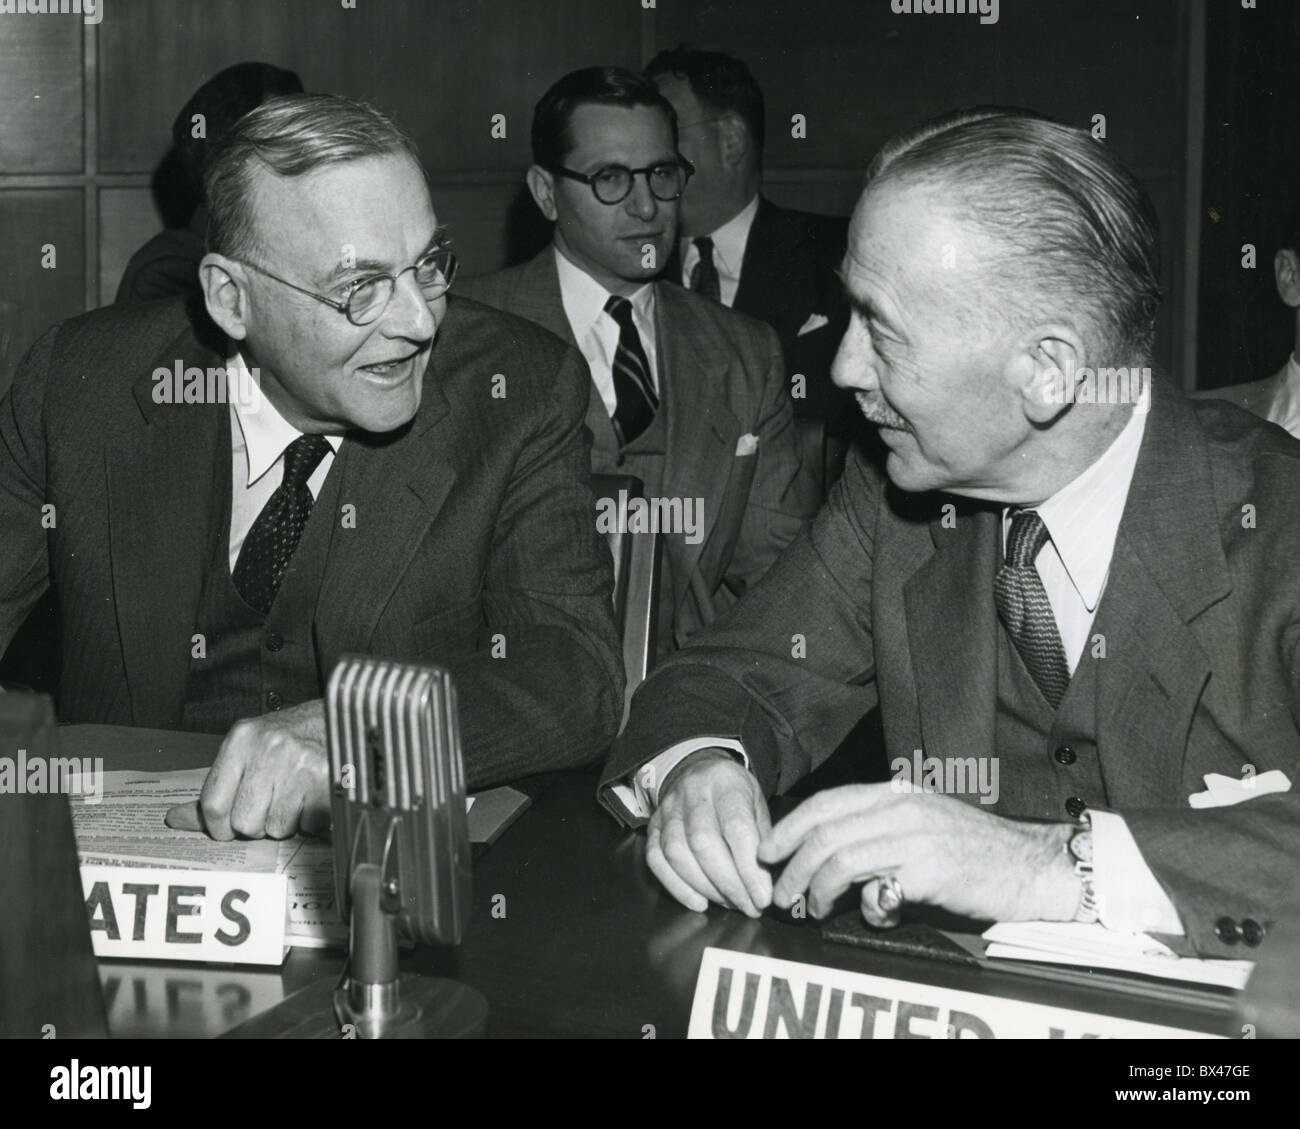 JOHN FOSTER DULLES and SIR ALEXANDER CADOGAN at the UN about 1950 - Stock Image